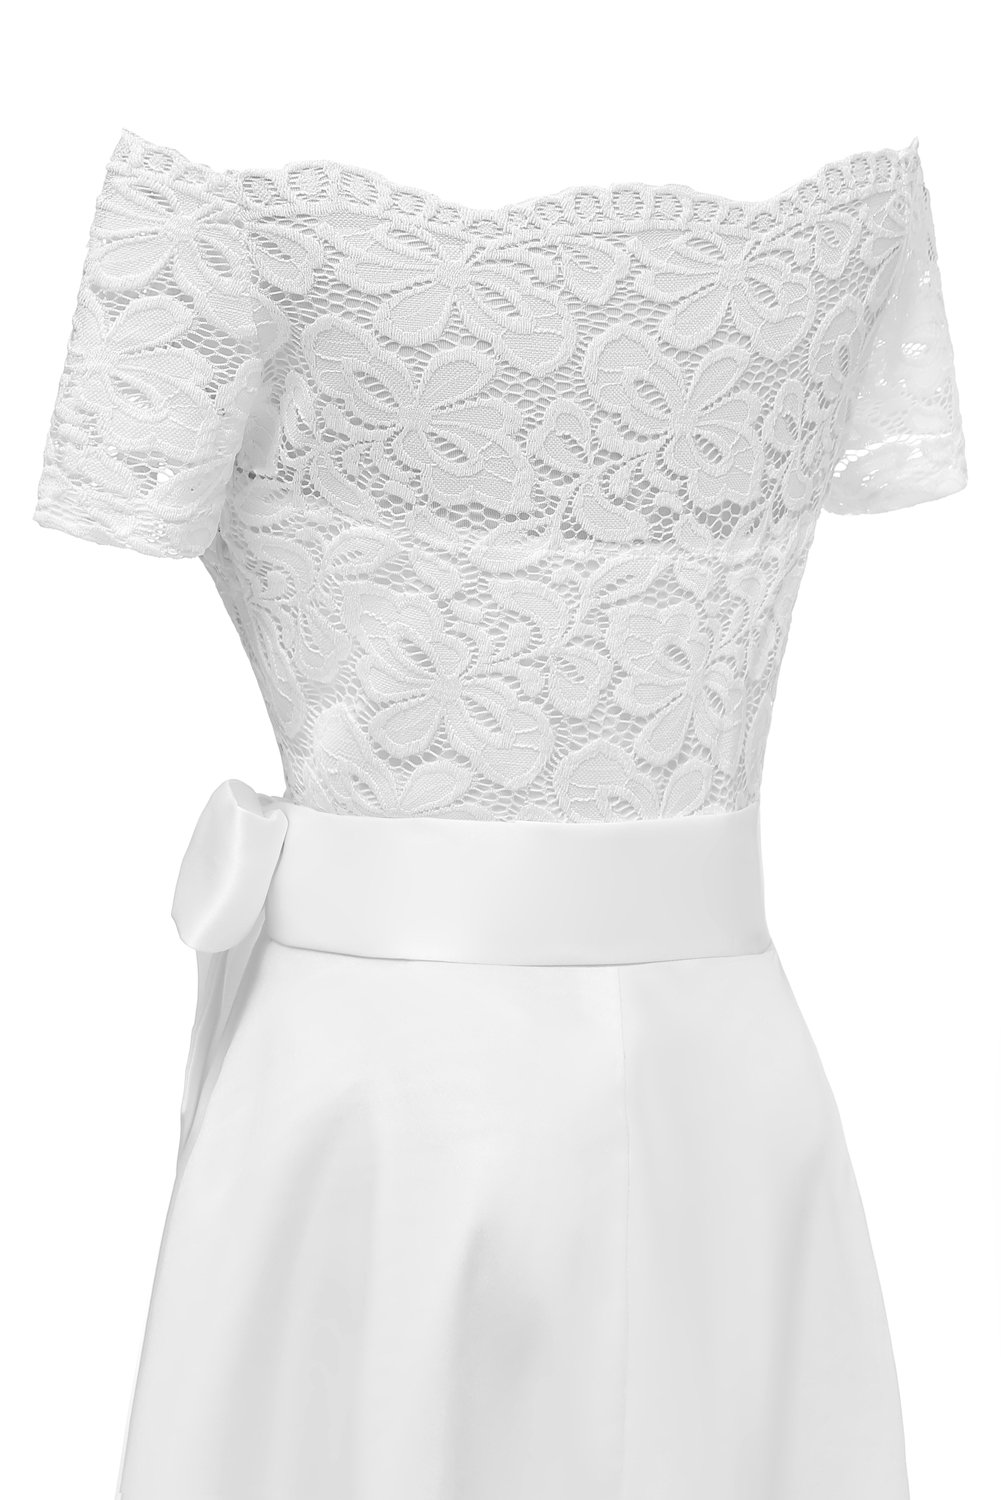 MILANO BRIDE Women's Vintage Floral Lace Short Sleeves Boat Neck Cocktail Formal Swing Dress-L-White by MILANO BRIDE (Image #7)